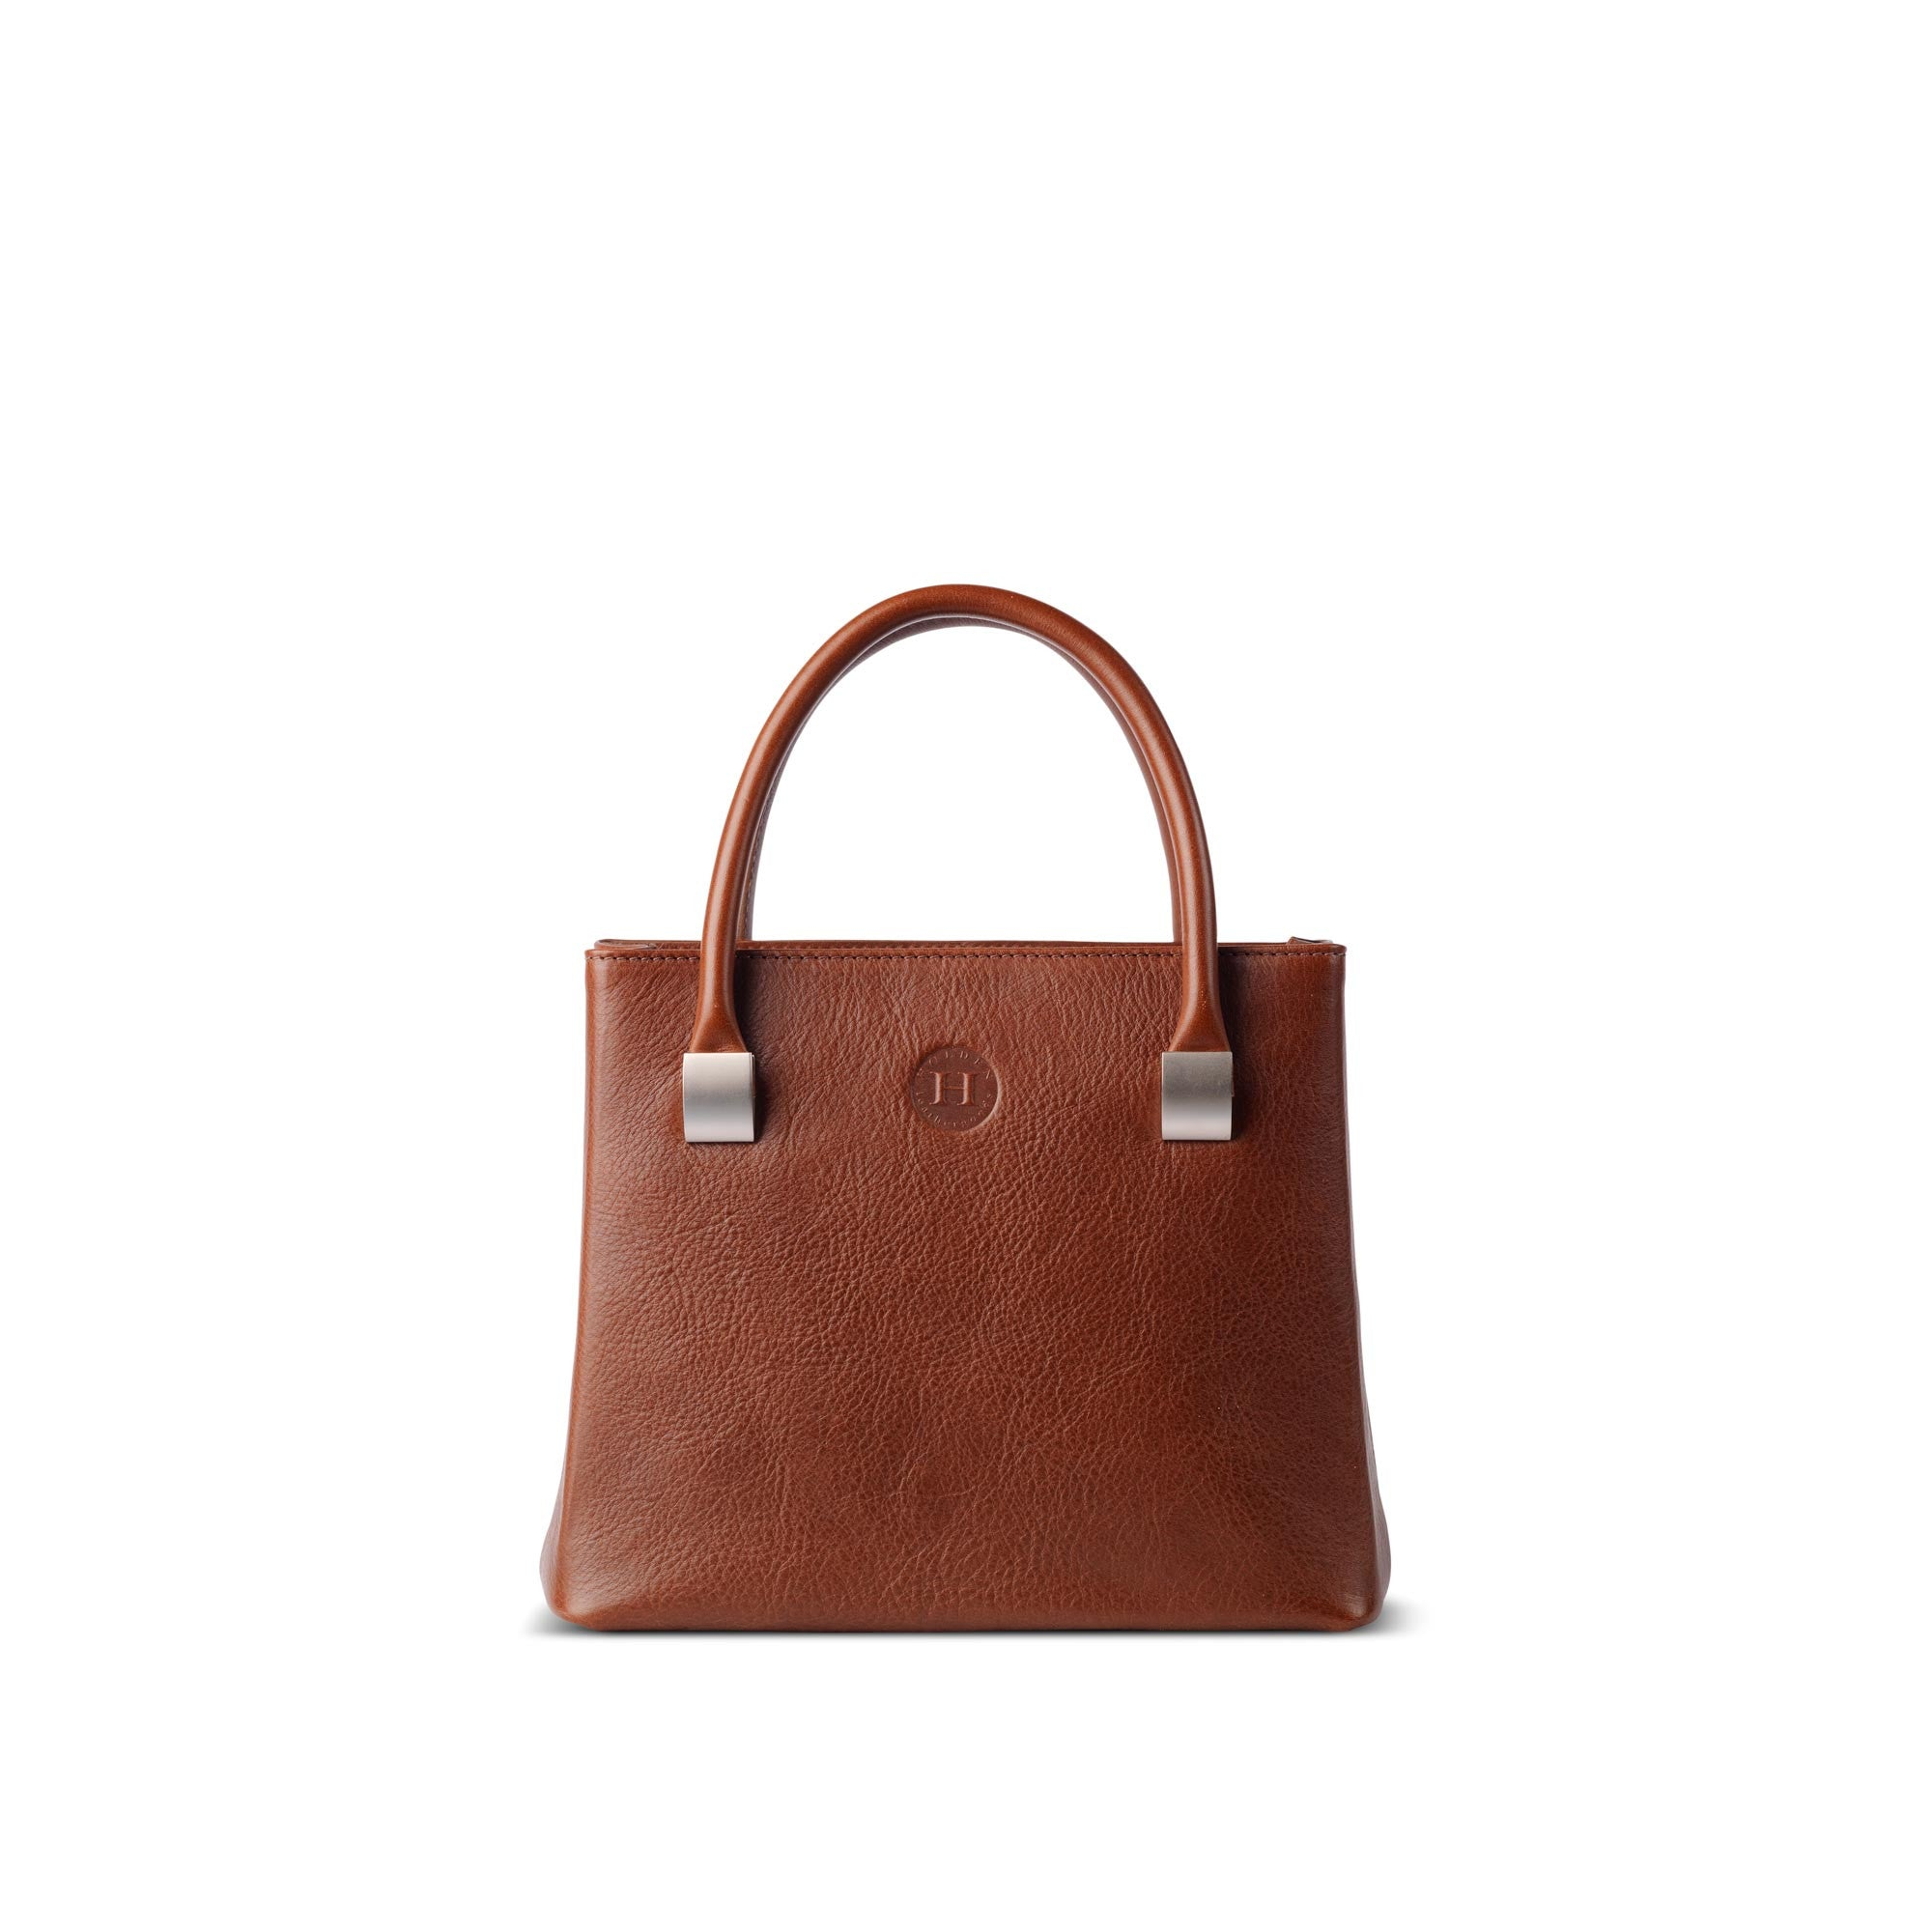 Aoife Leather Handbag Medium Brown - Holden Leathergoods, leather bags handmade in Ireland